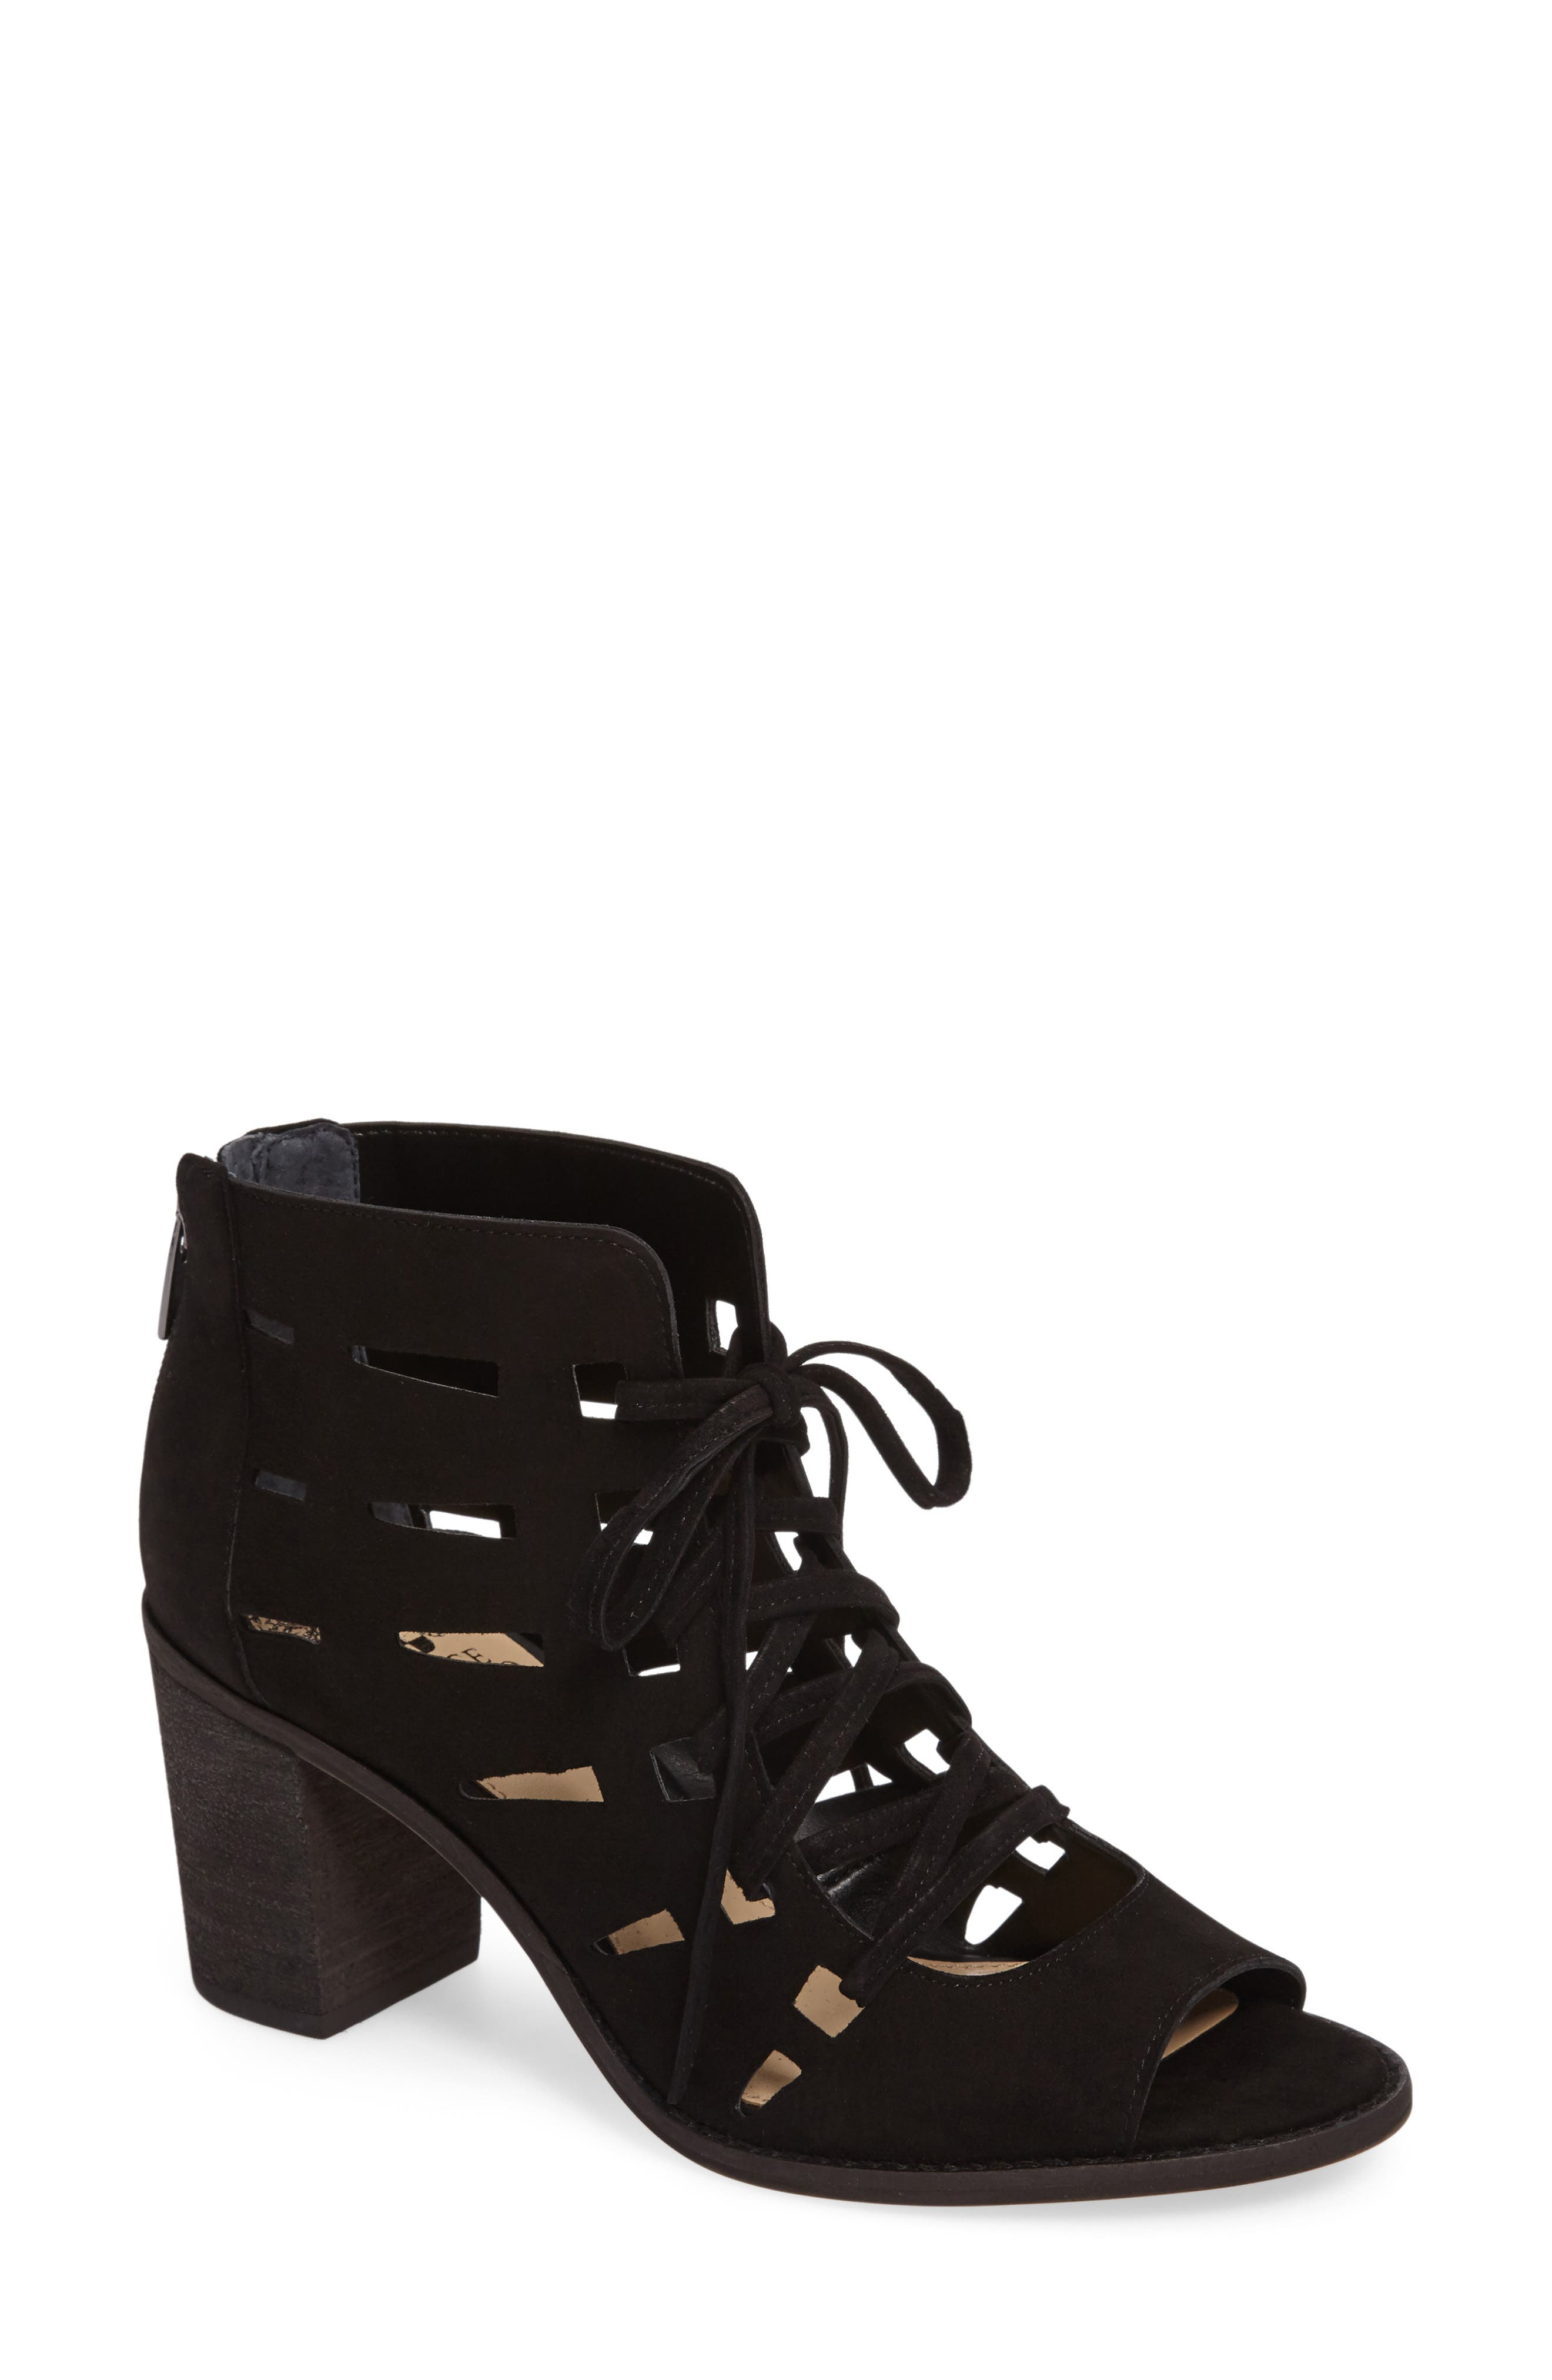 VINCE CAMUTO Tressa Perforated Lace-Up Sandal, Main, color, 001